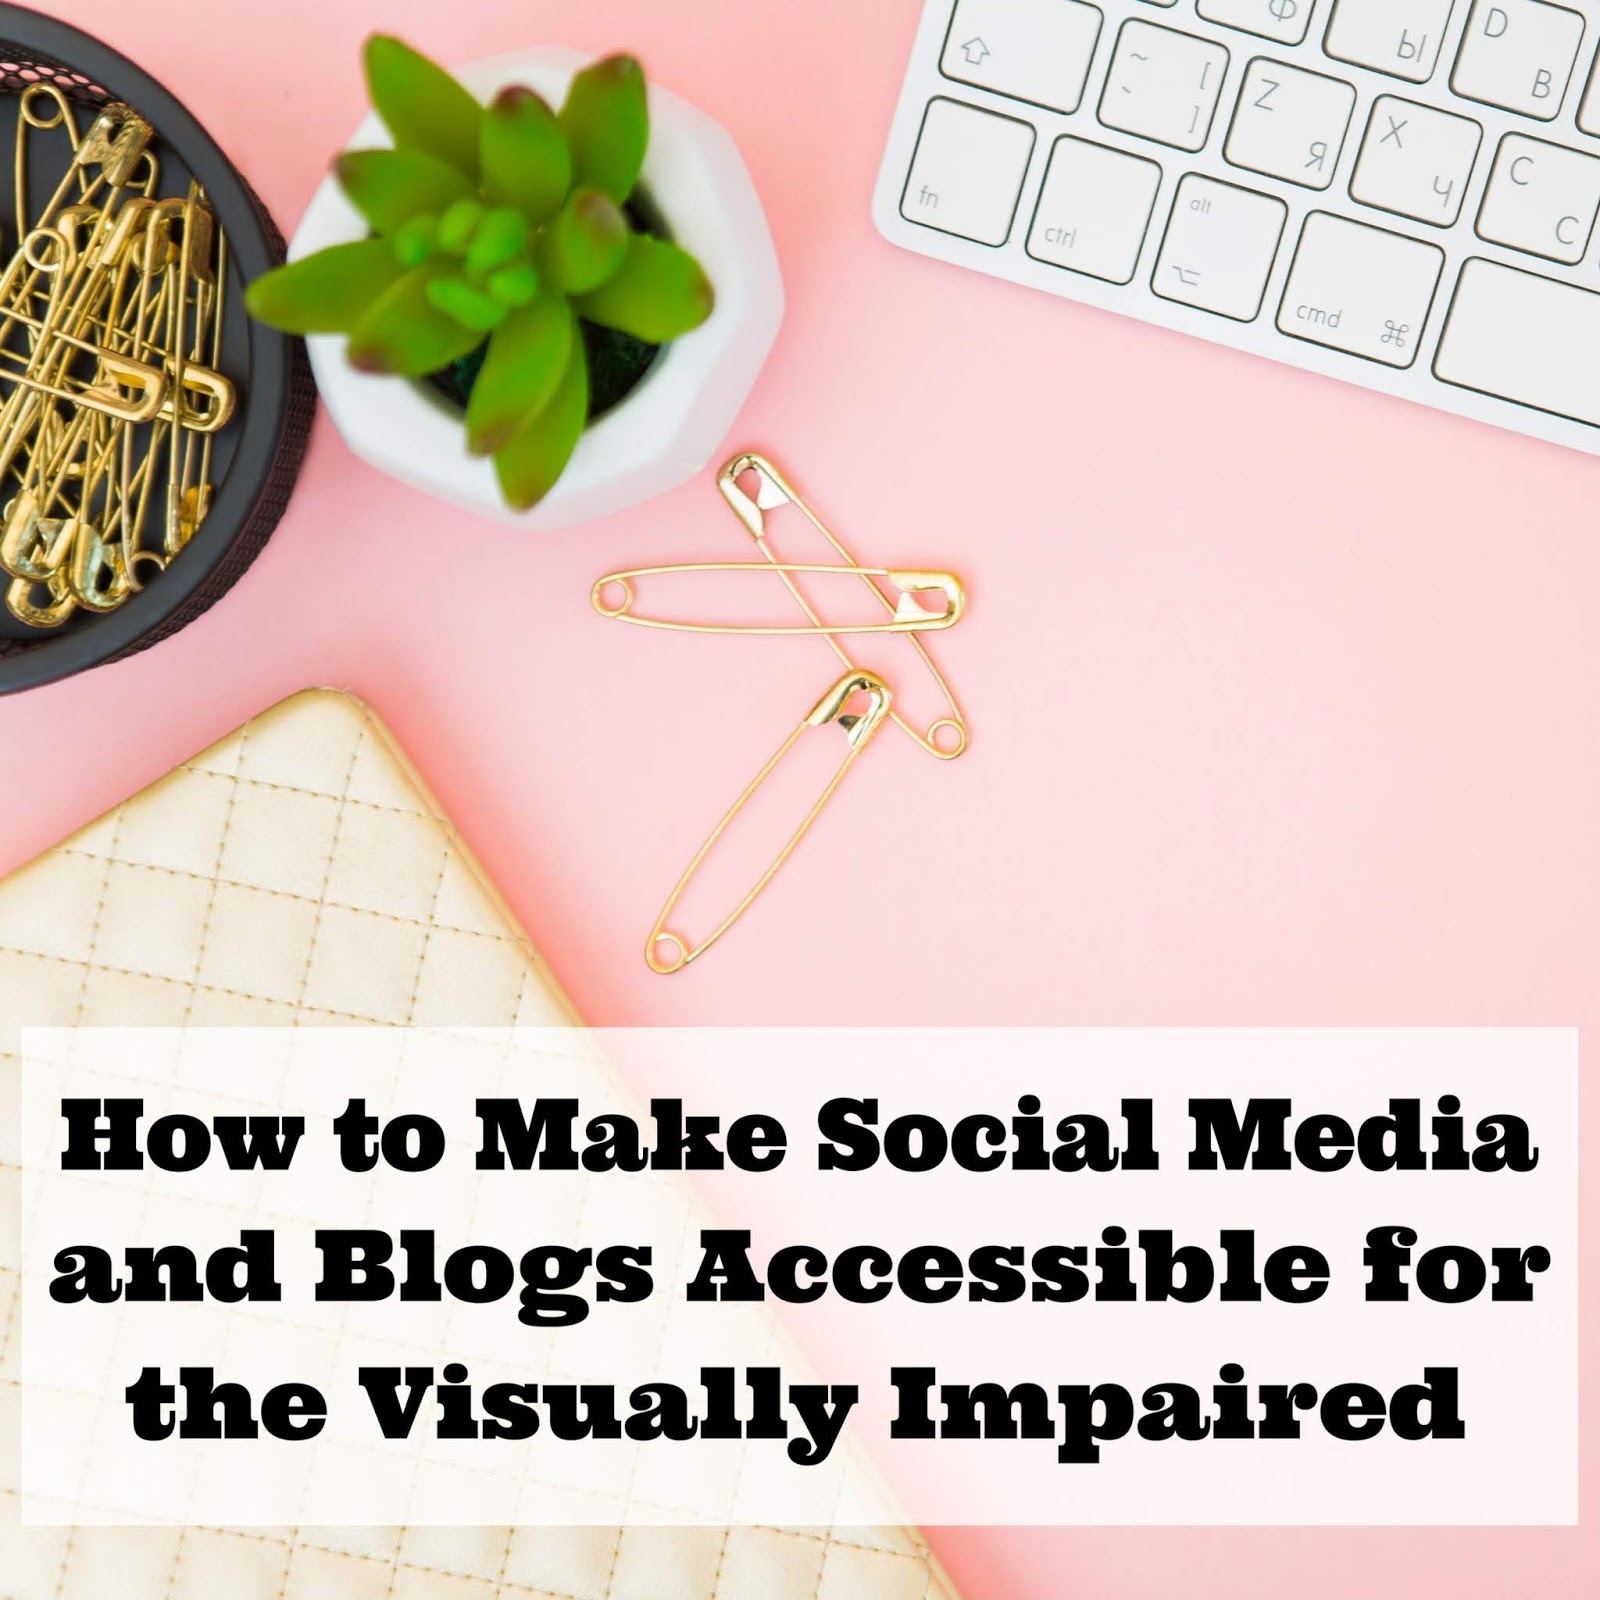 How To Make Social Media And Blogs Accessible For The Visually